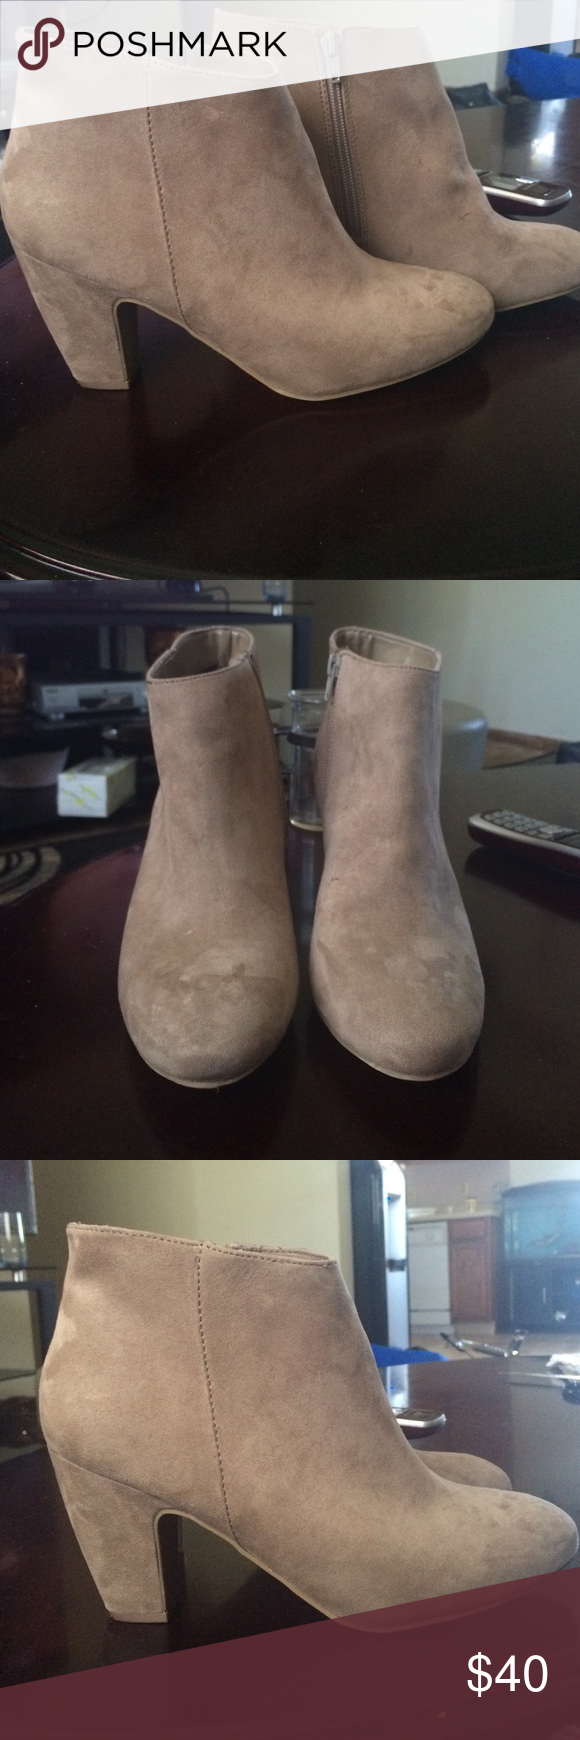 Express Boots Excellent condition, only worn twice. They are size 10 sand/nude color Express Shoes Ankle Boots & Booties